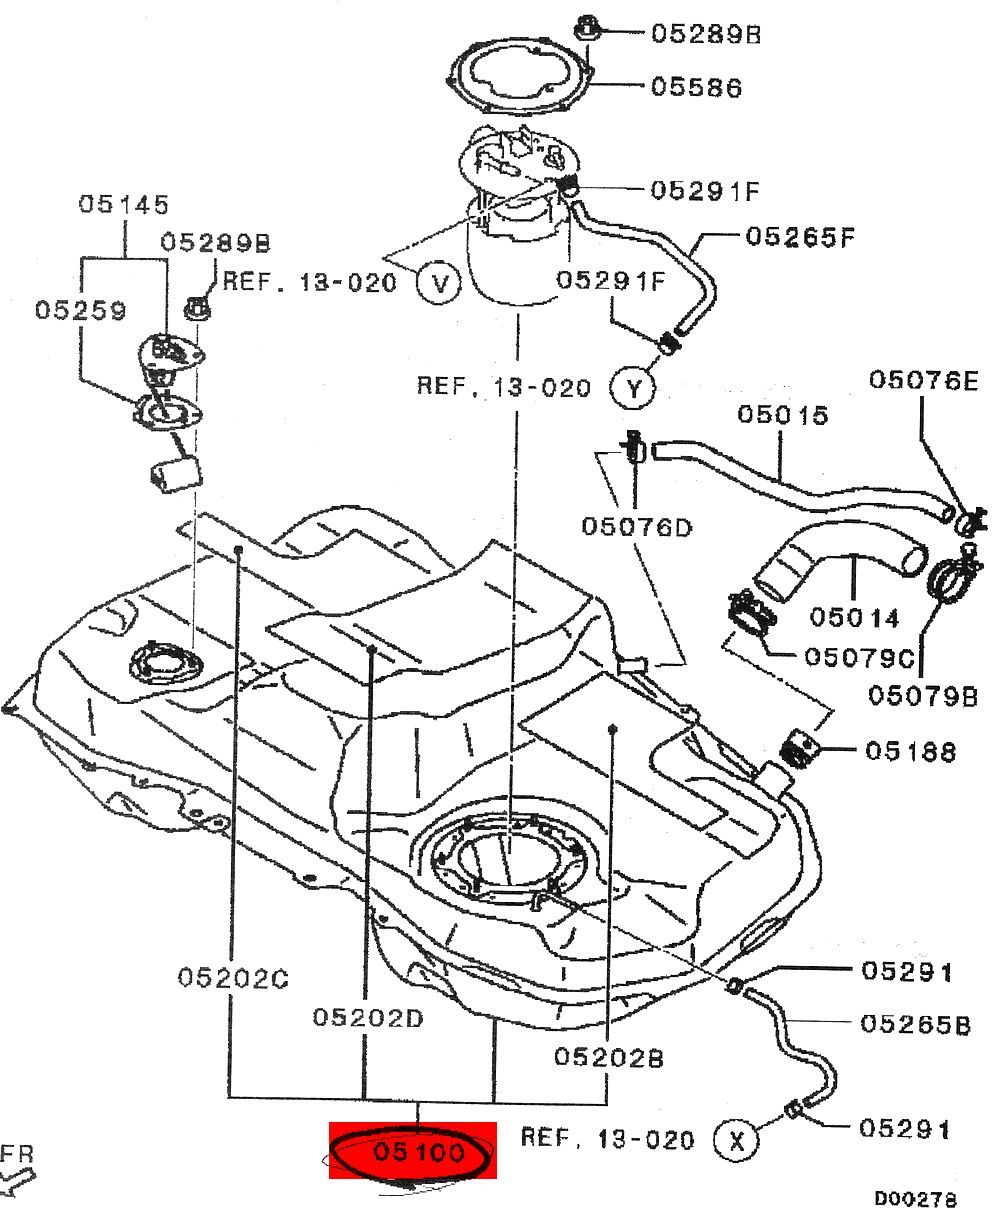 2003 Toyota Rav4 Fuse Box Diagram. Toyota. Wiring Diagram